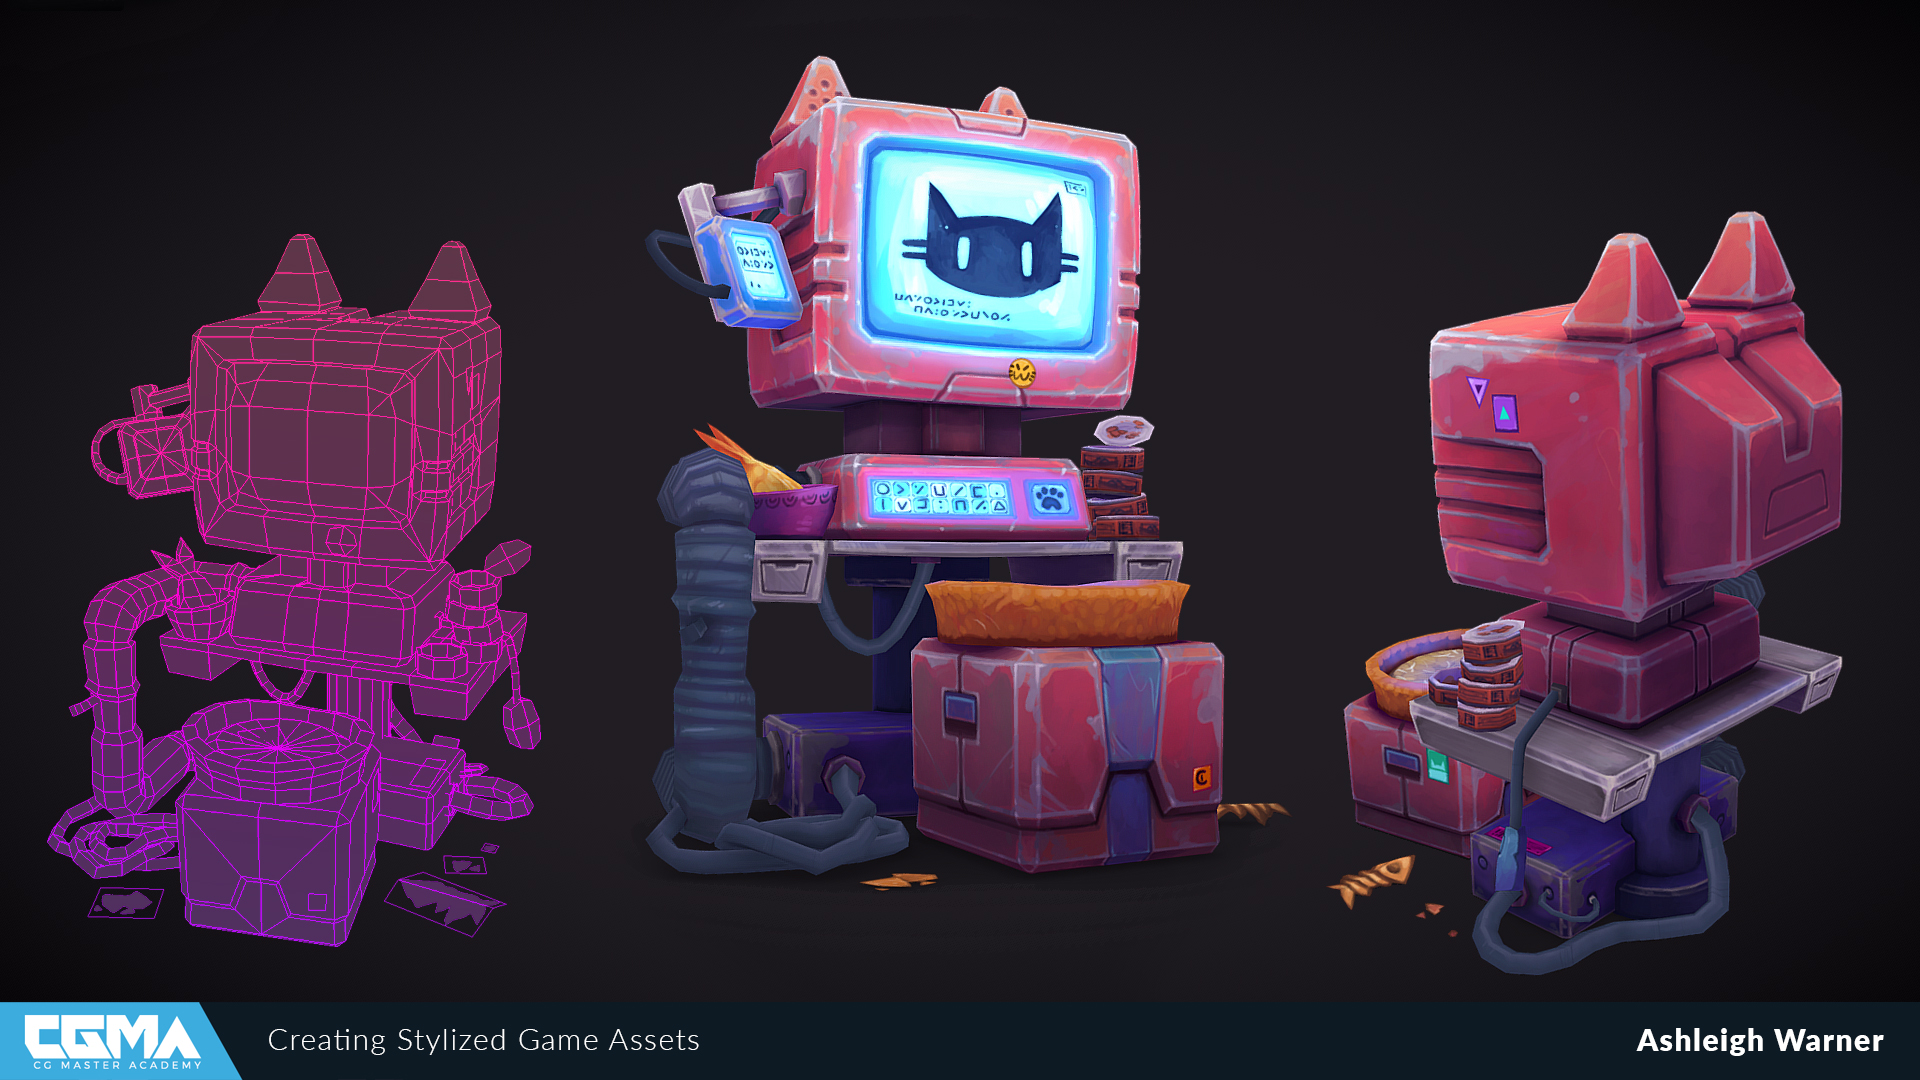 Creating Stylized Game Assets with Ashleigh Warner